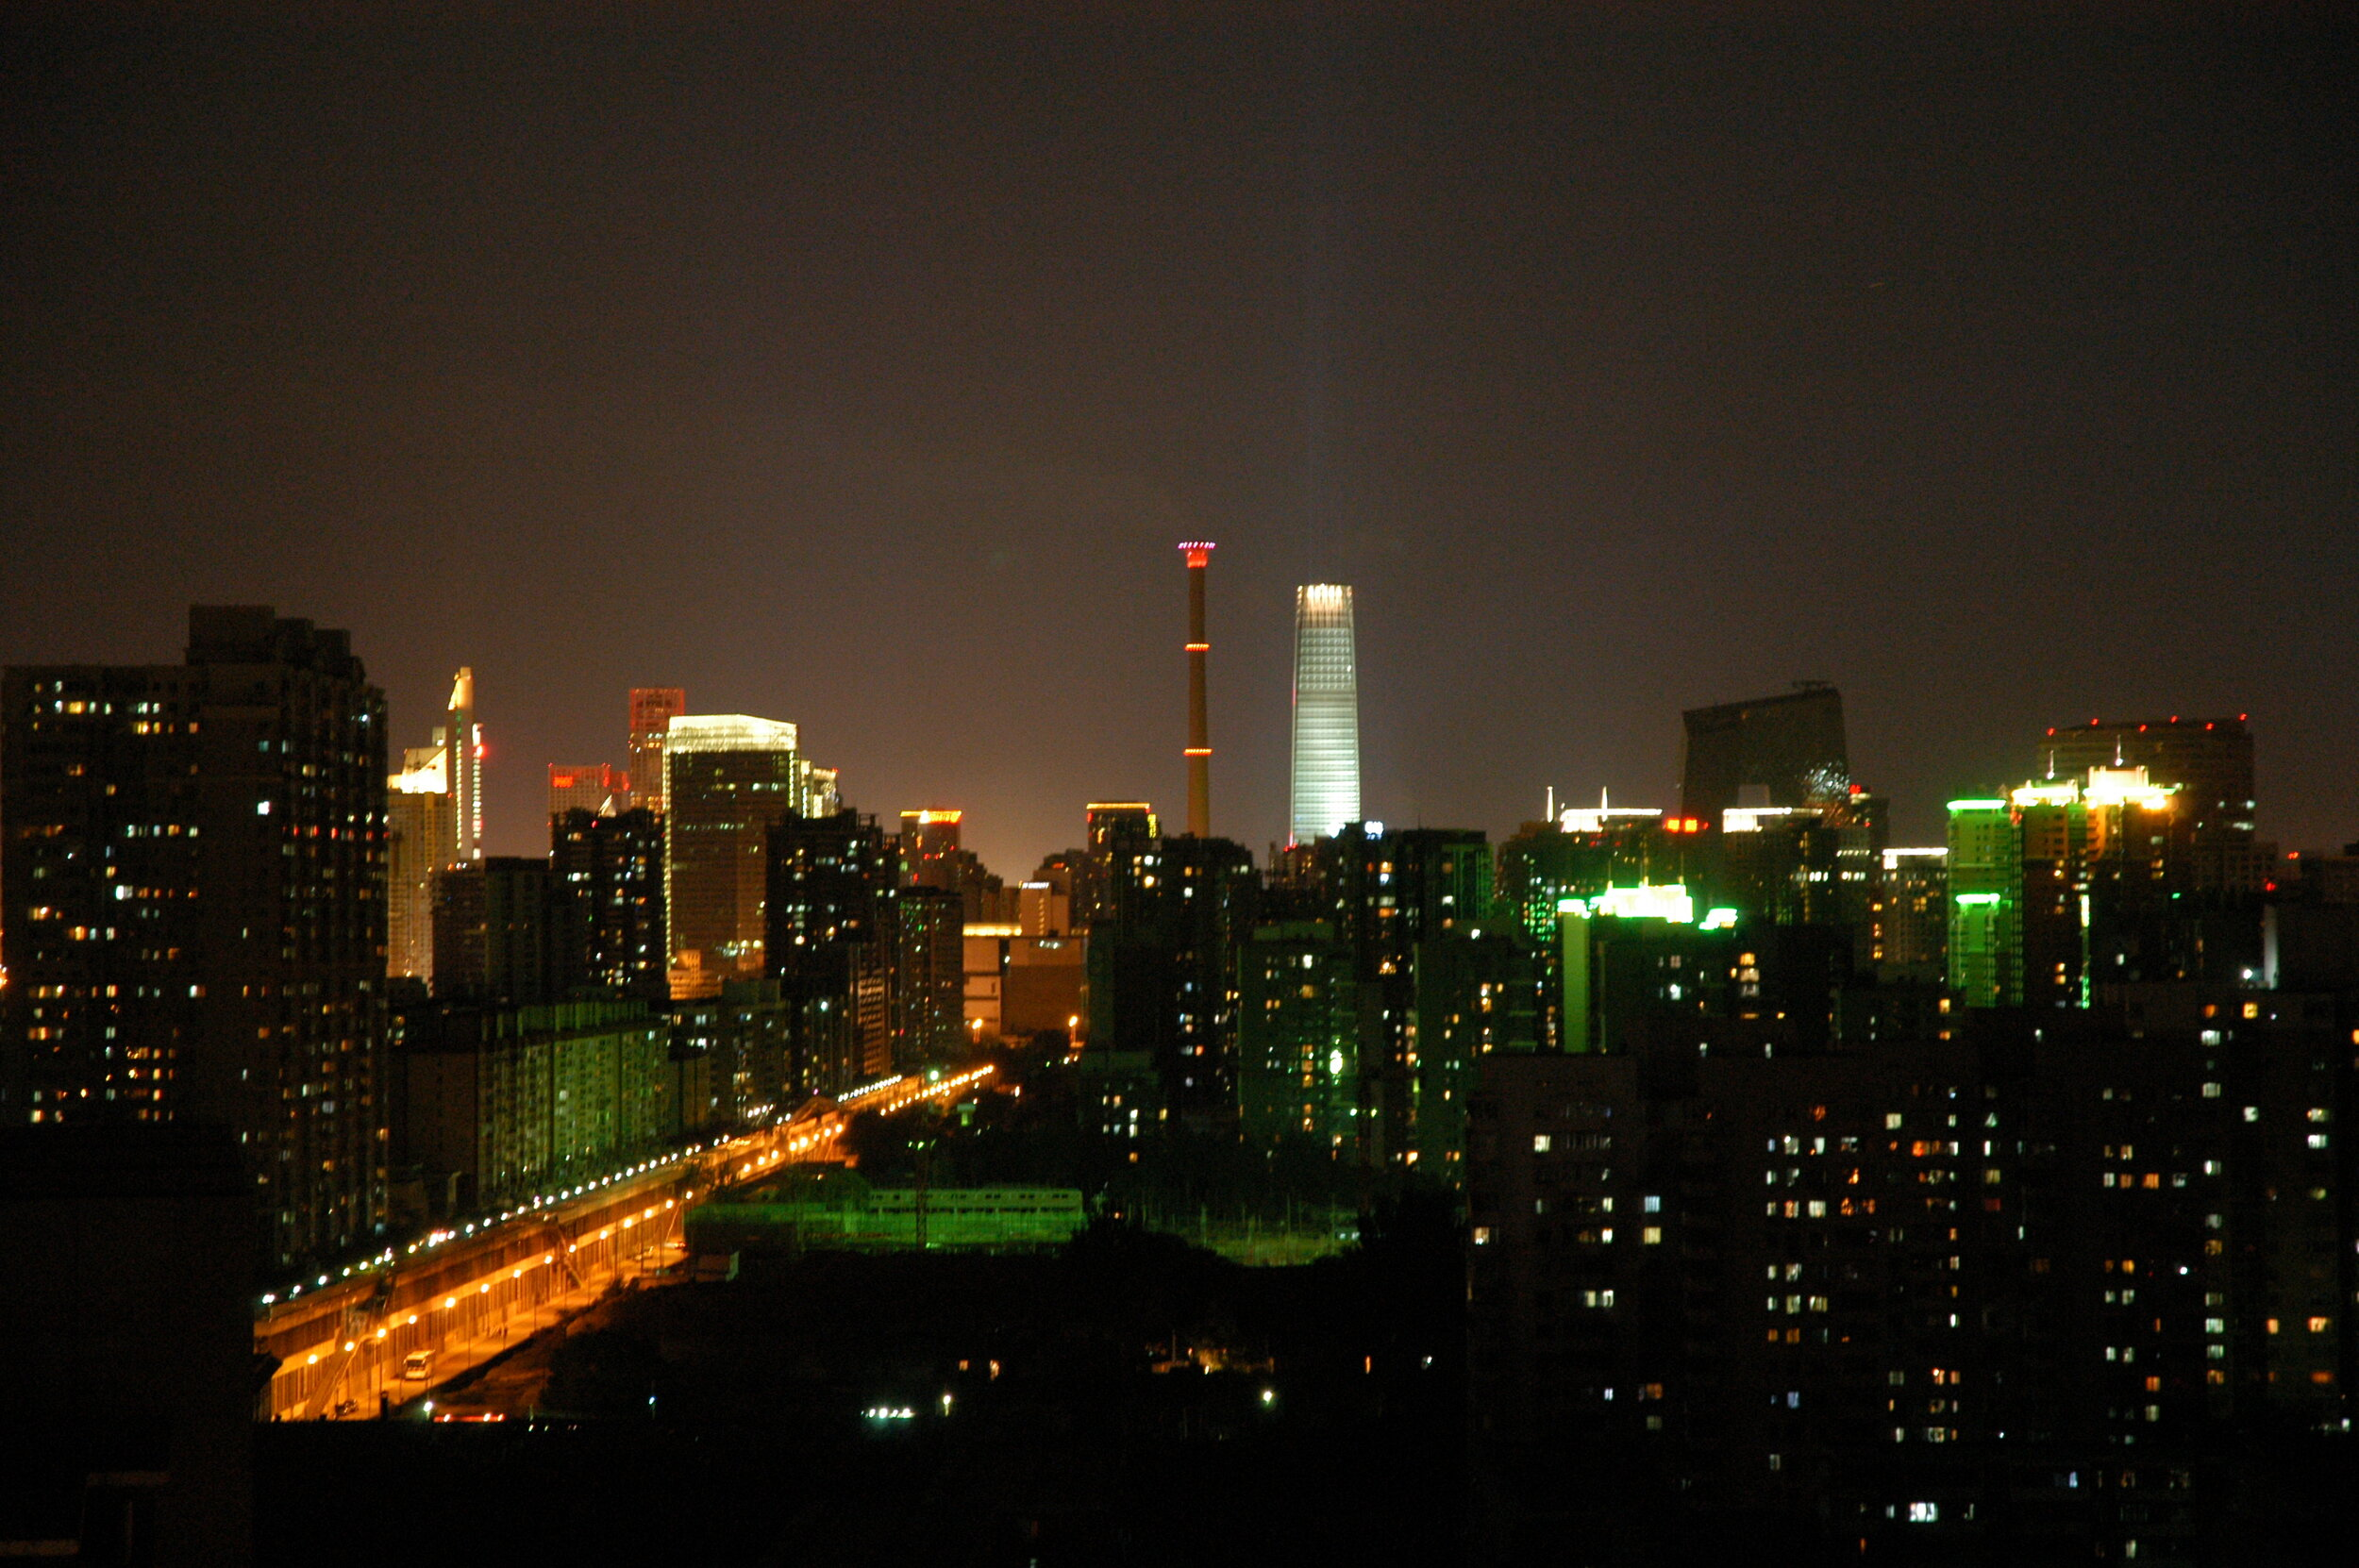 Wikicommons: Beijing central business district skyline at night.